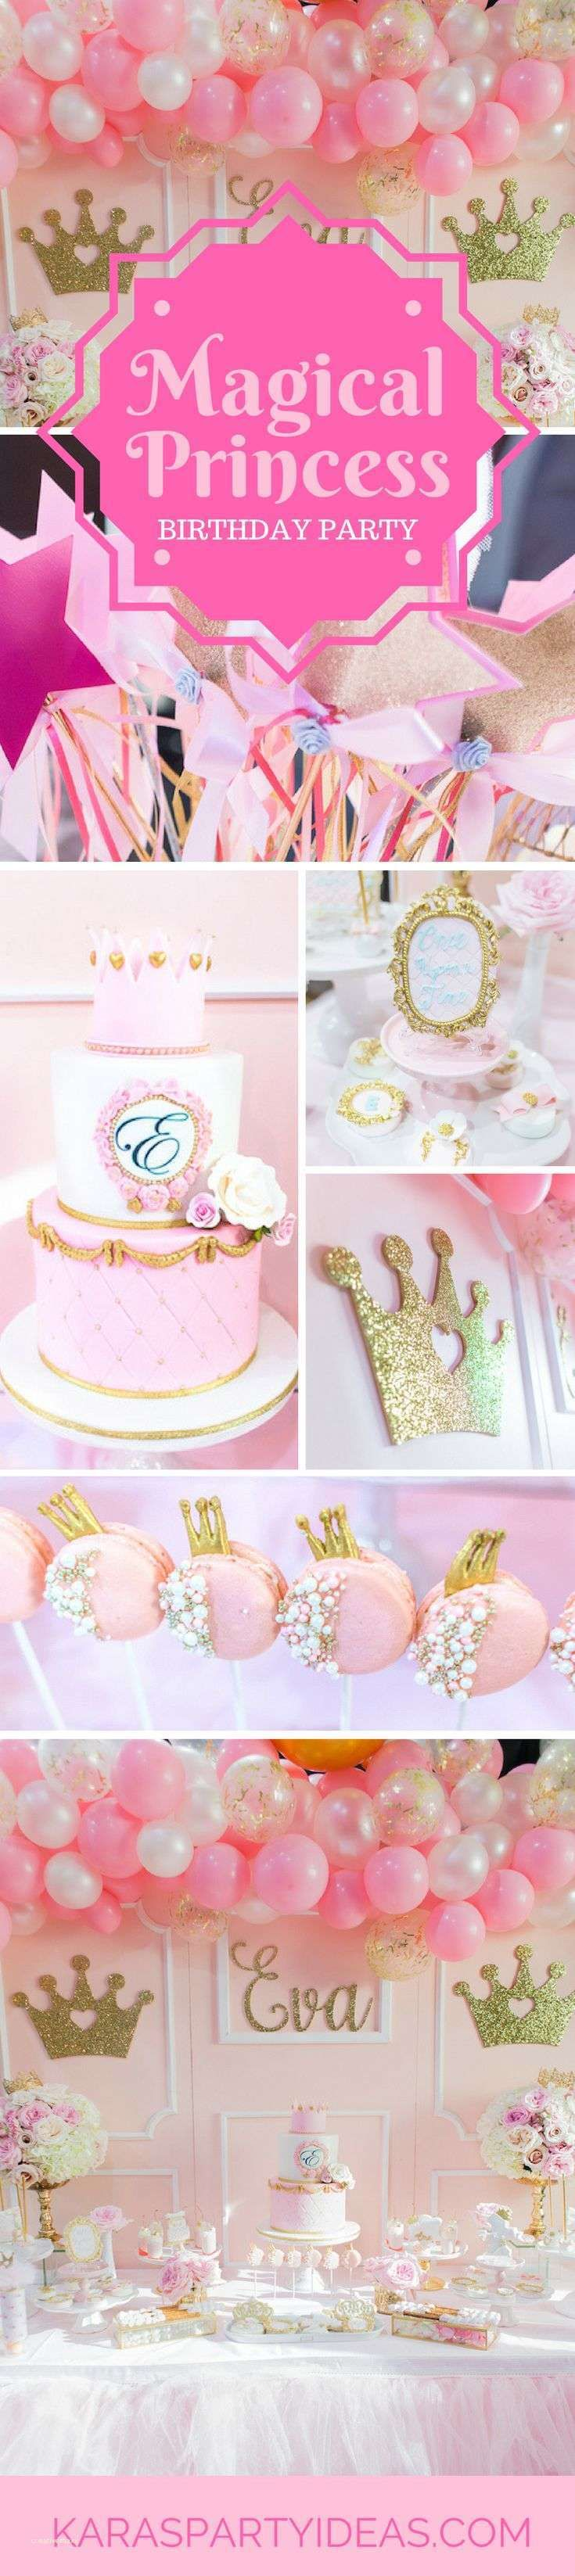 2nd Birthday Princess Party Ideas - Unique 2nd Birthday Princess Party Ideas, First Birthday Princess Pink and Gold Cake